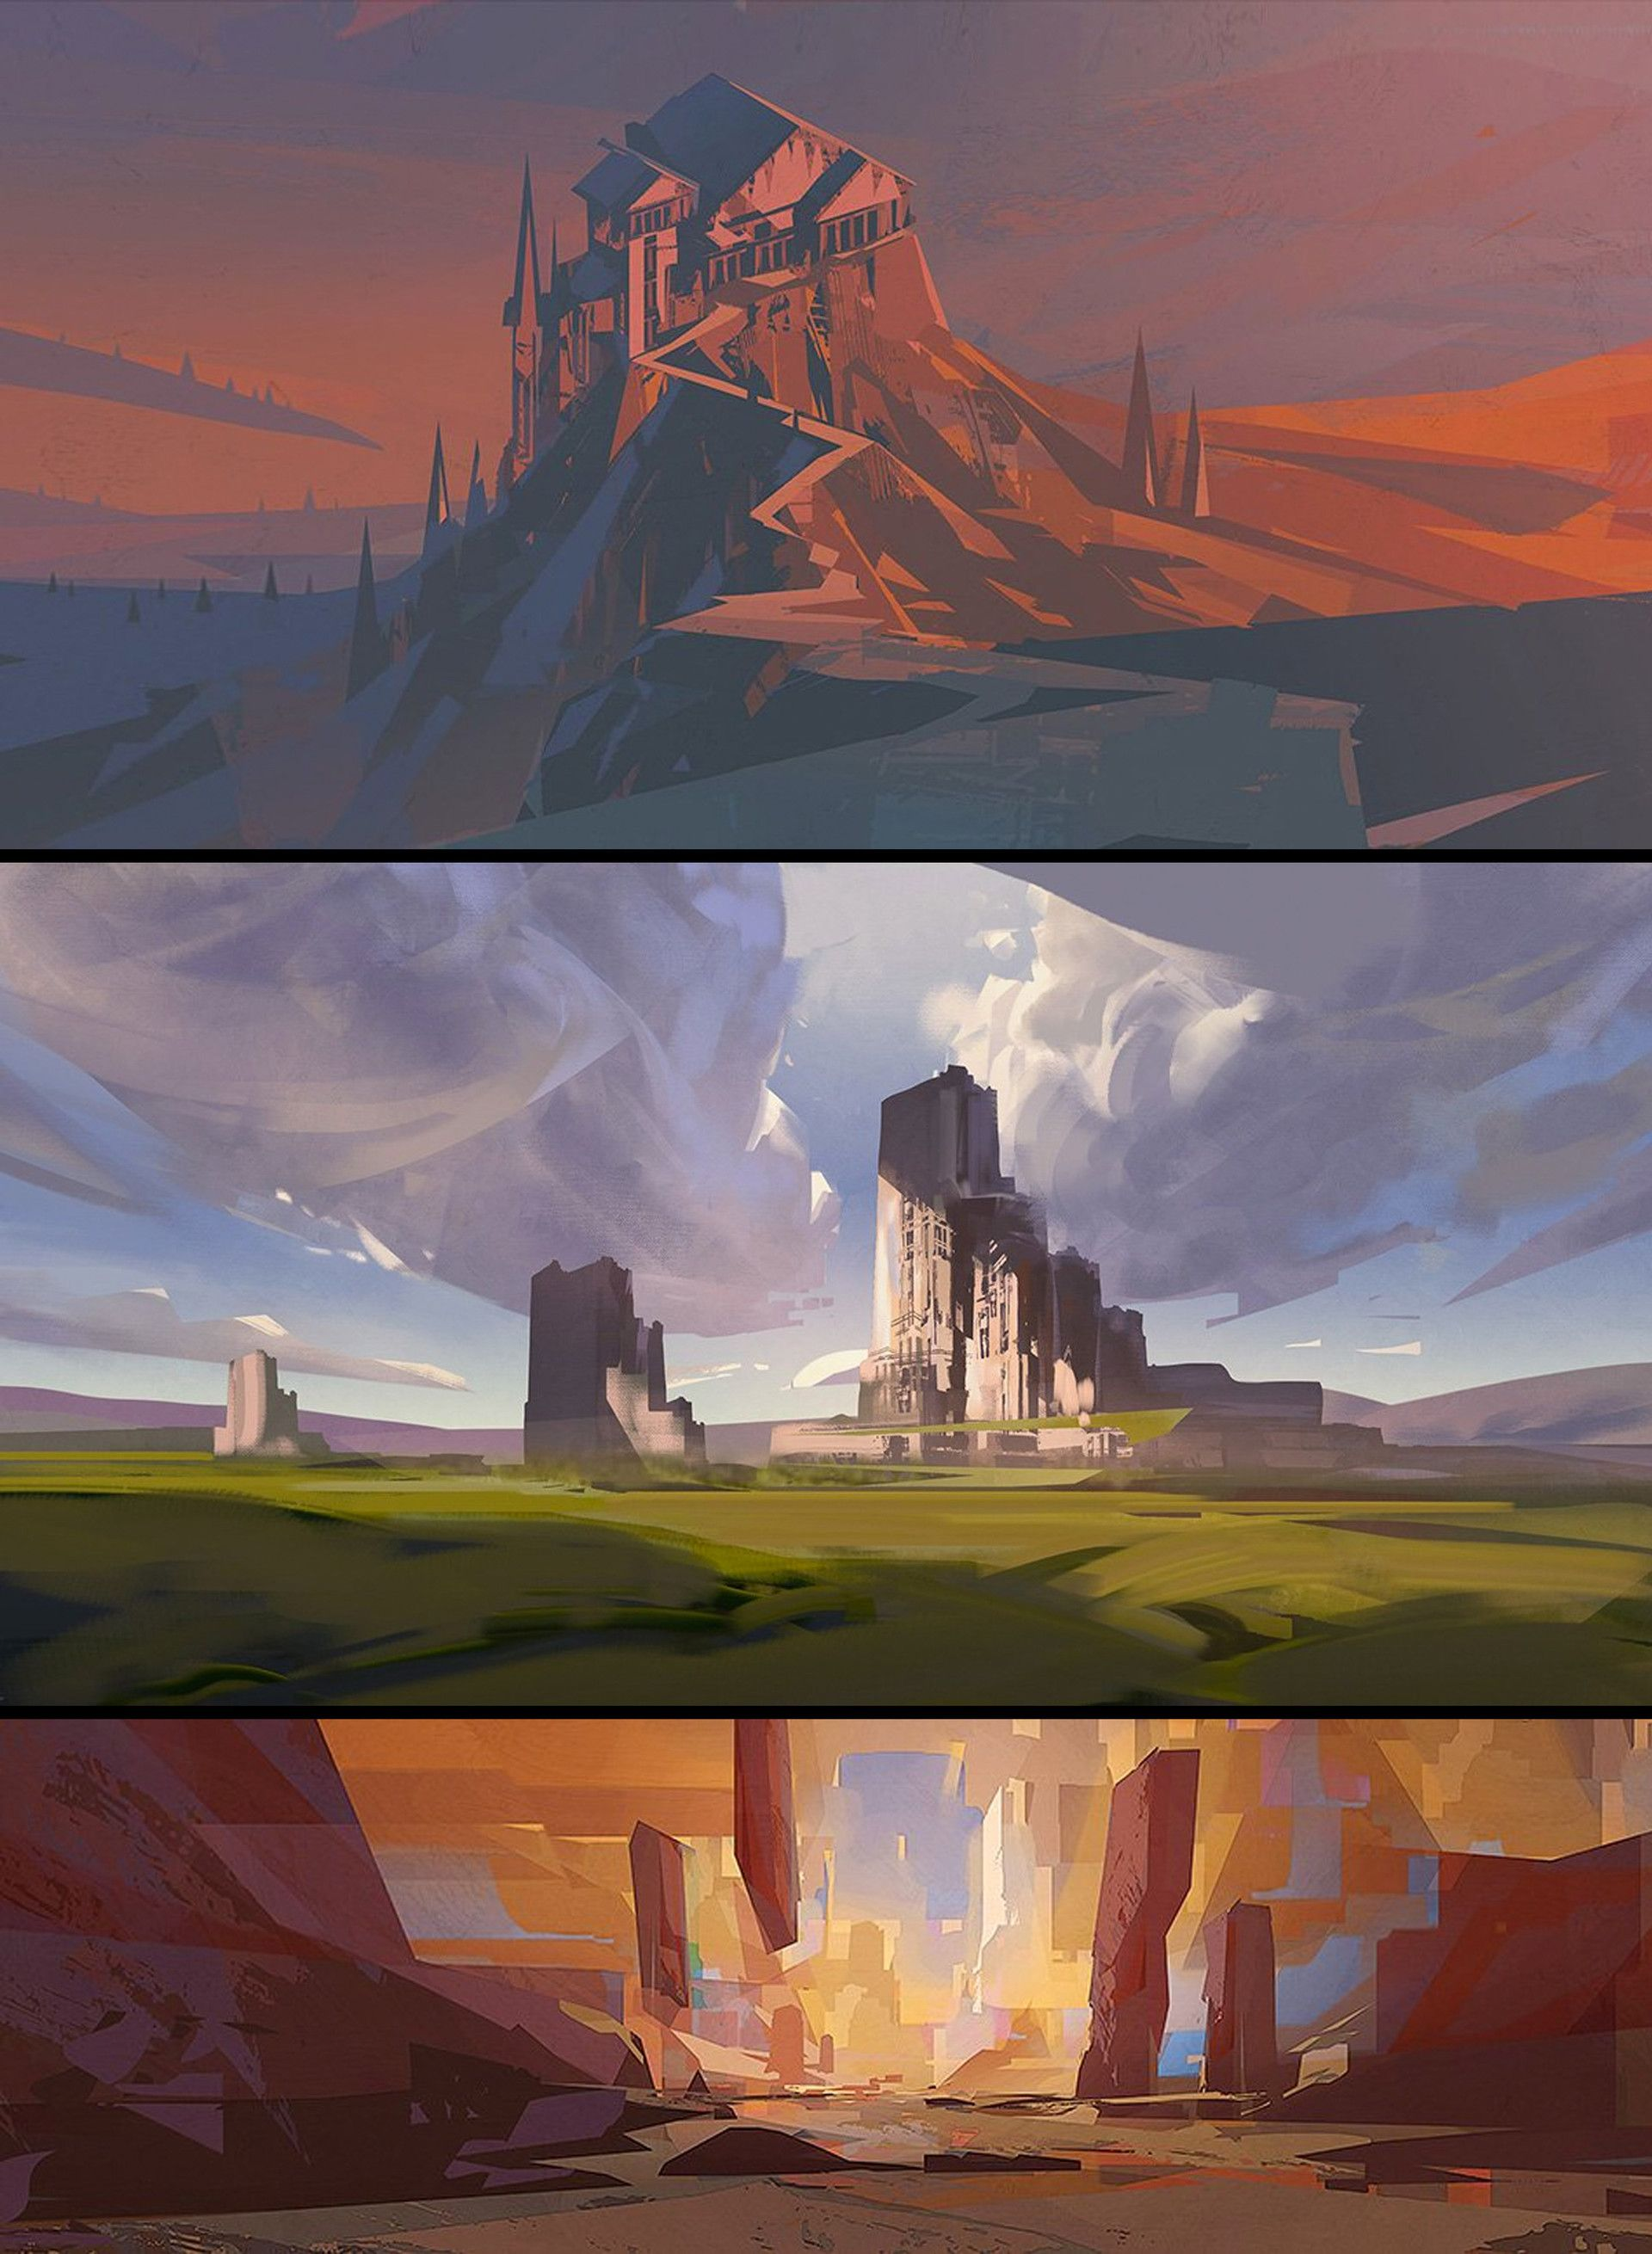 ArtStation Sketches 4, Jordan Grimmer Painting, Oleos